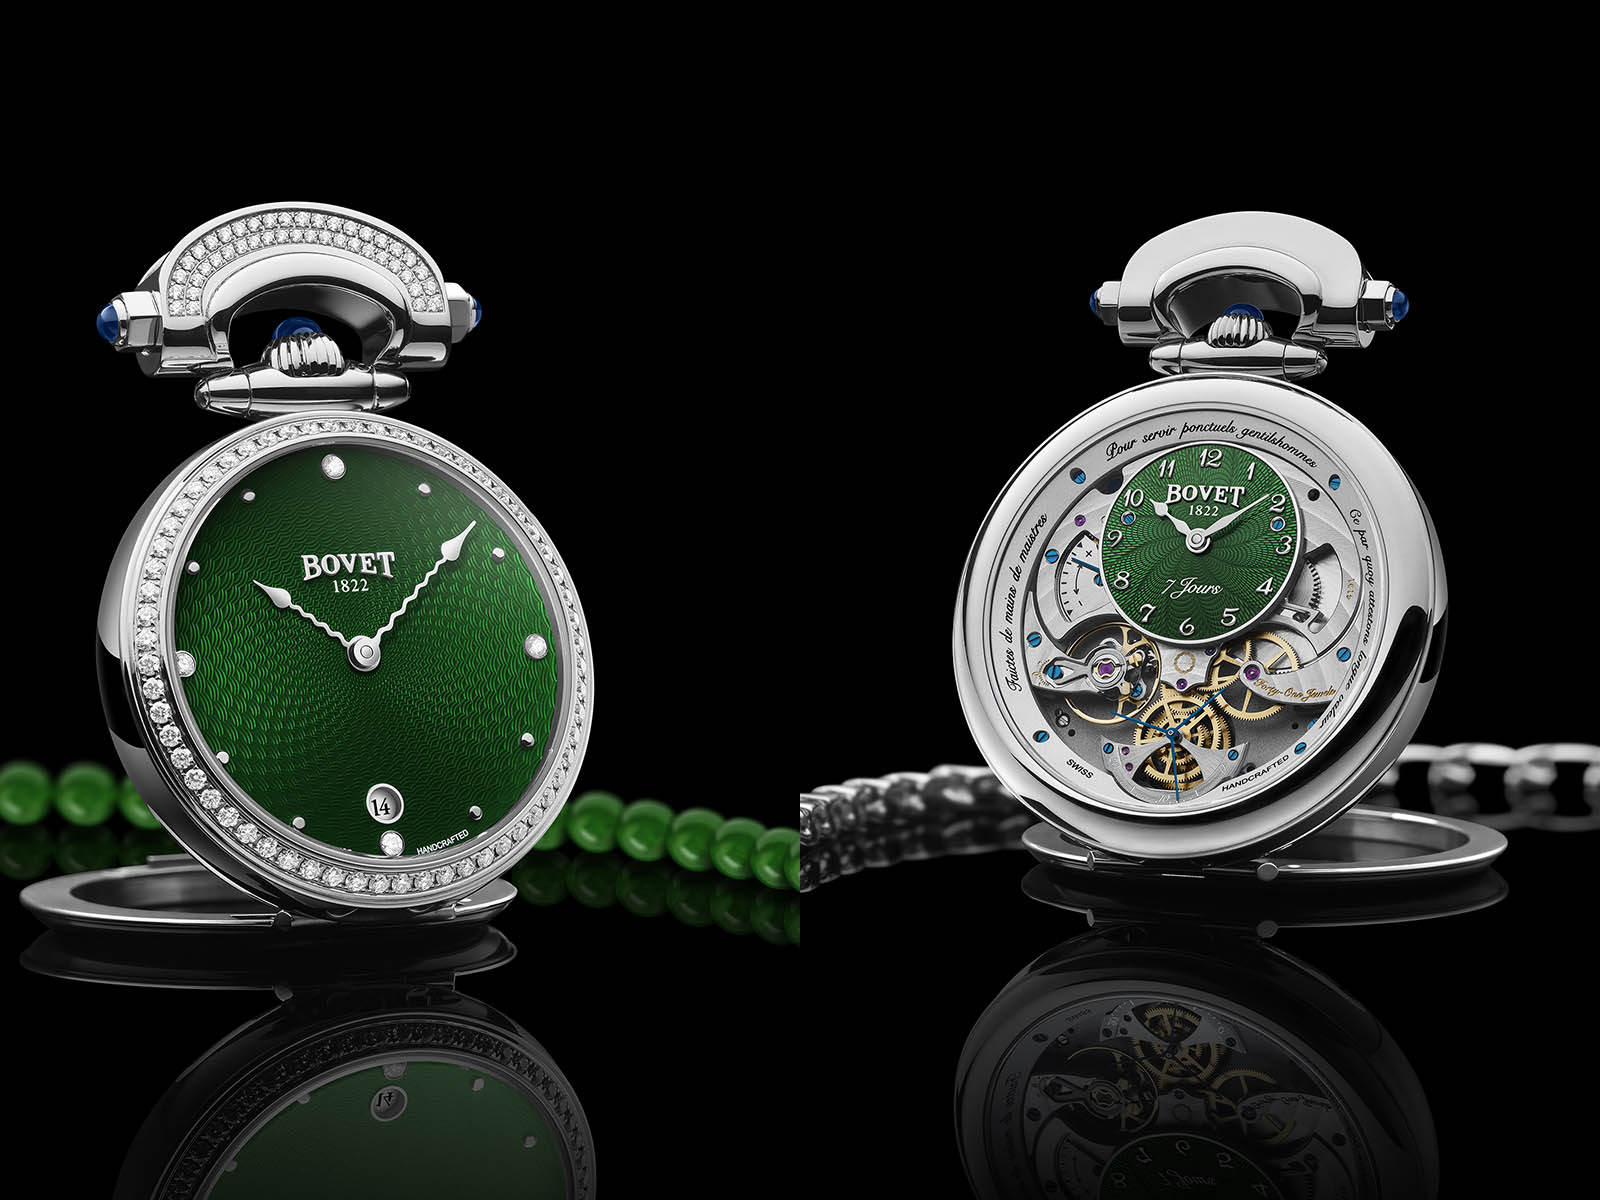 bovet-miss-audrey-2020-novelties-1.jpg